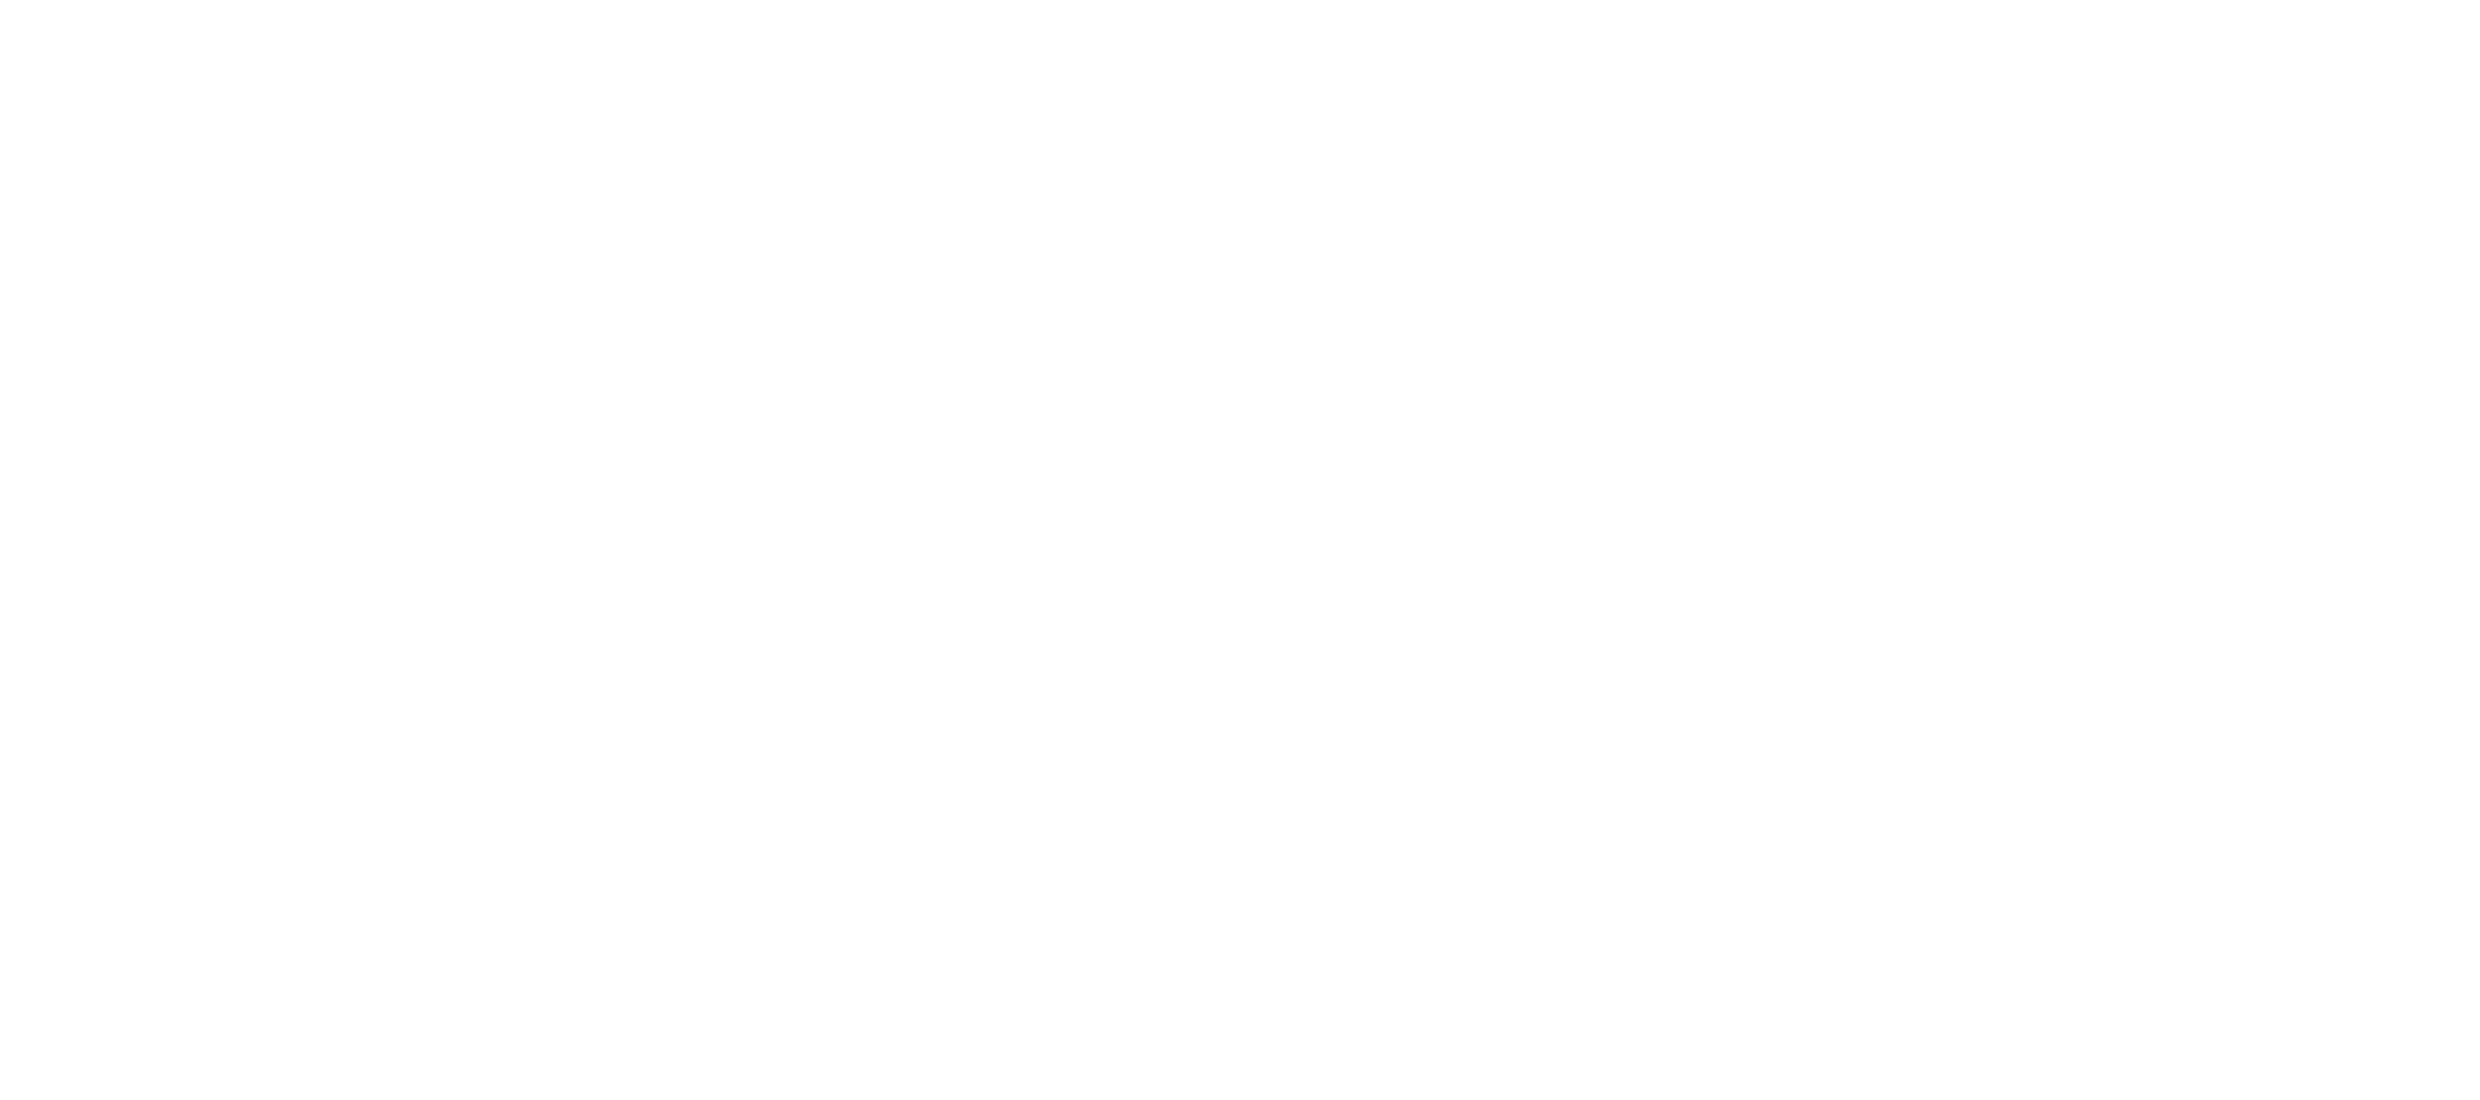 Act I: Connect Through Culture